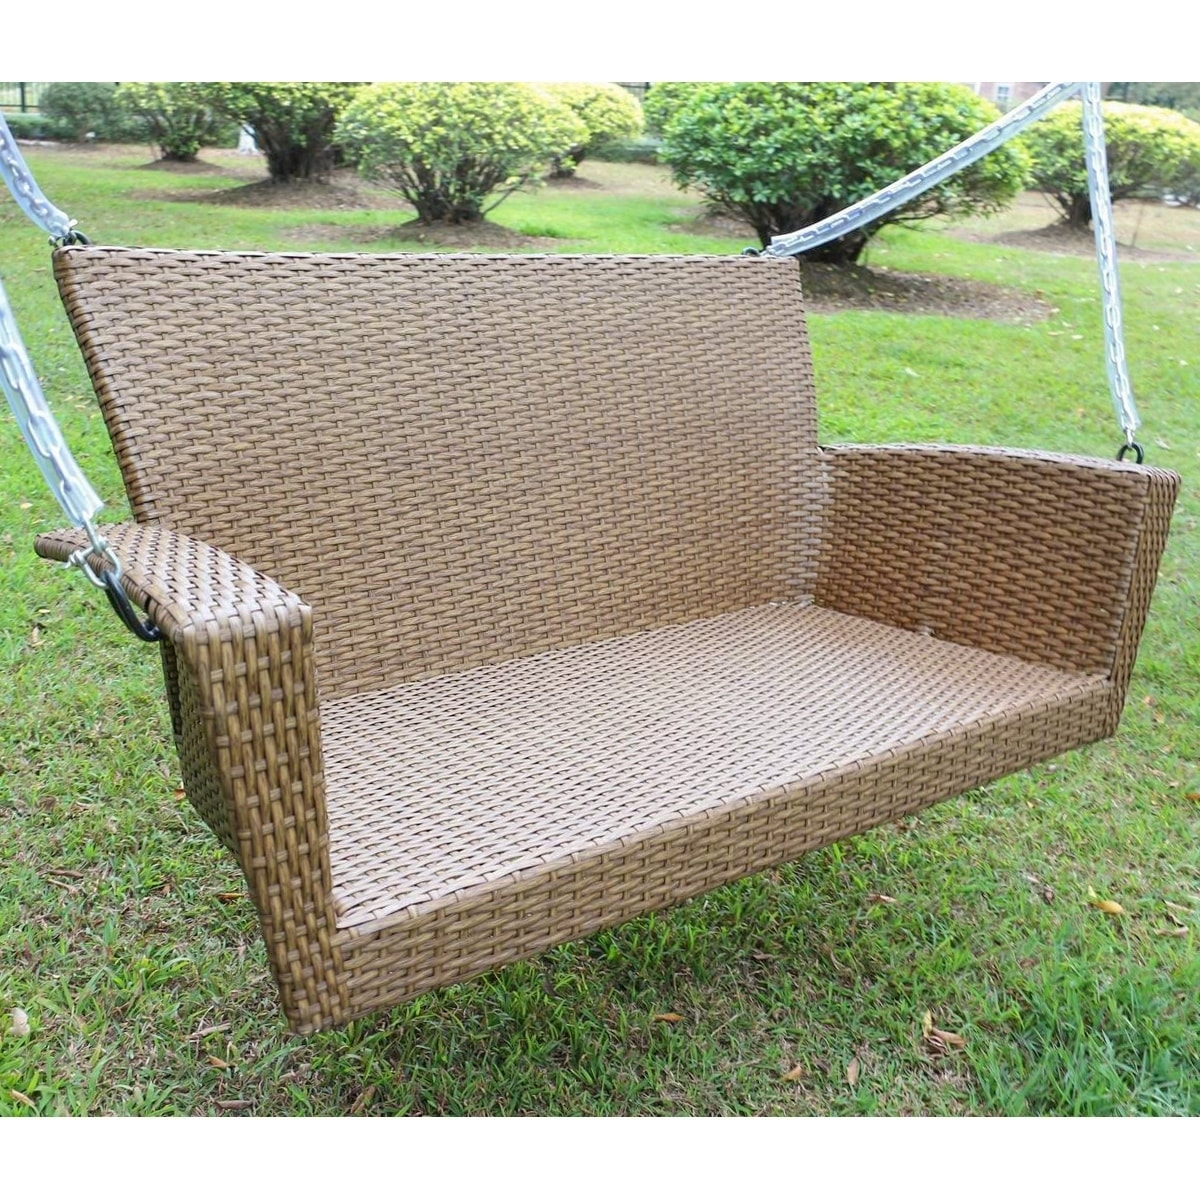 steel porch outdoor swing weather chair resistant sturdy uv furniture wooden material bay patio synthetic metal hanging color size large resin white rattan wicker frame of swings brown chains casco and